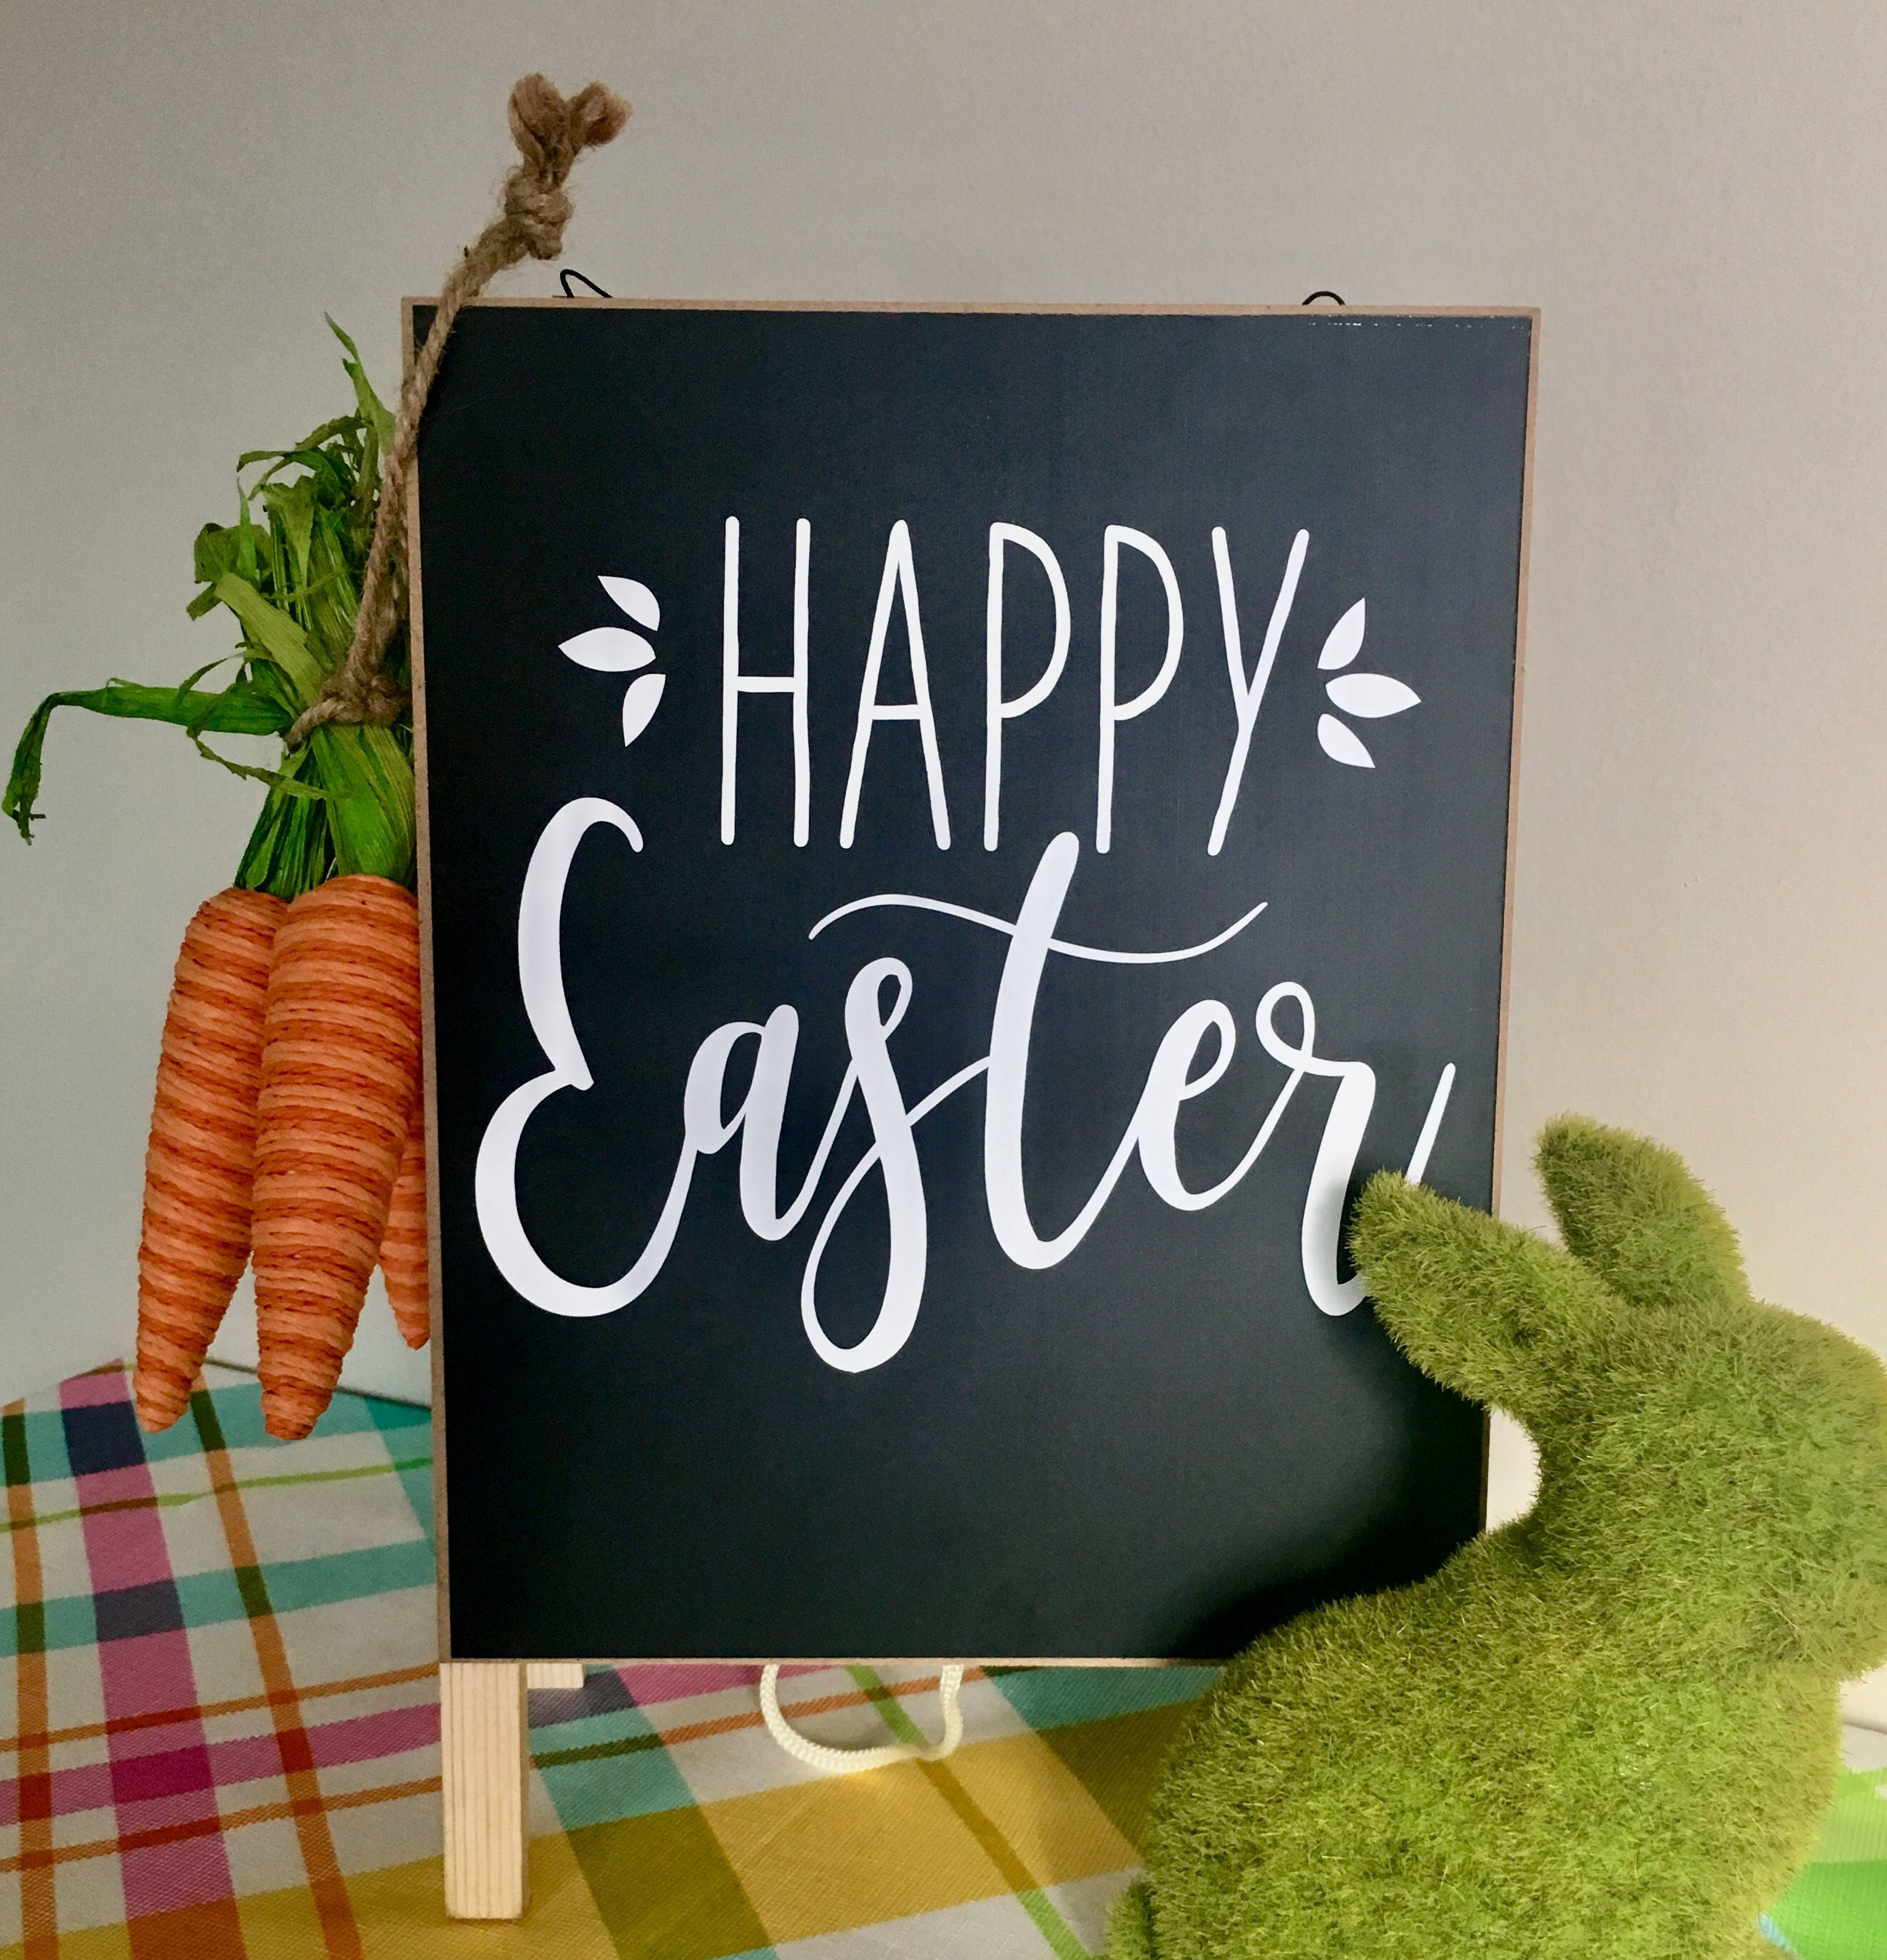 Happy Easter Decal Vinyl Decor Spring Rustic Wall Farmhouse Sign Home